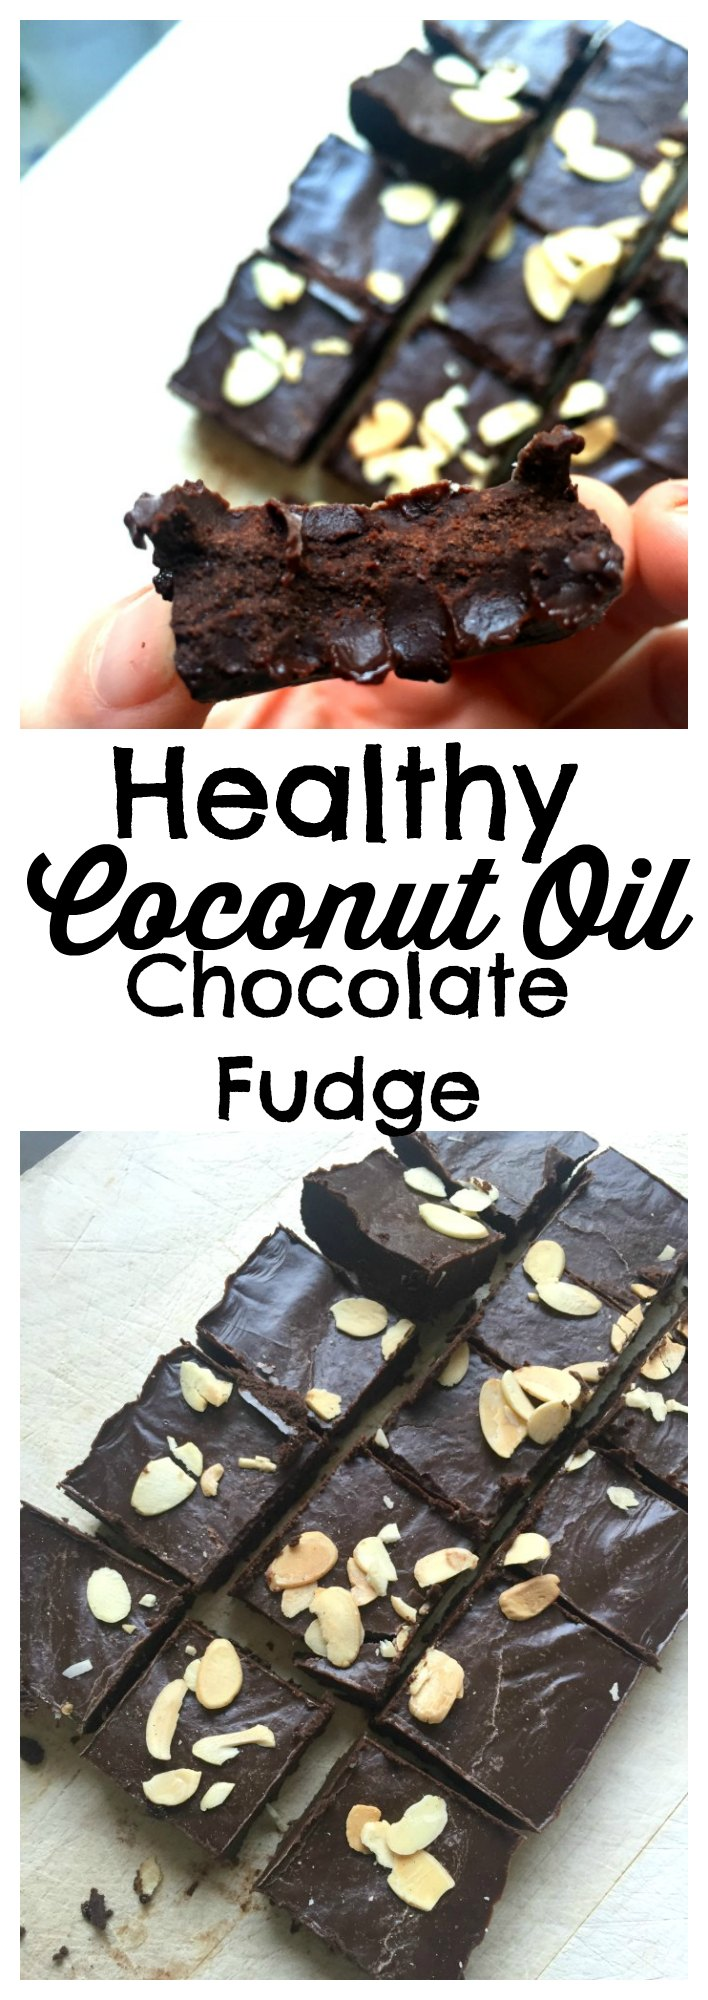 3 Minute Healthy Chocolate Fudge - delicious healthy fudge made with coconut oil and cocoa powder, ready in under an hour!